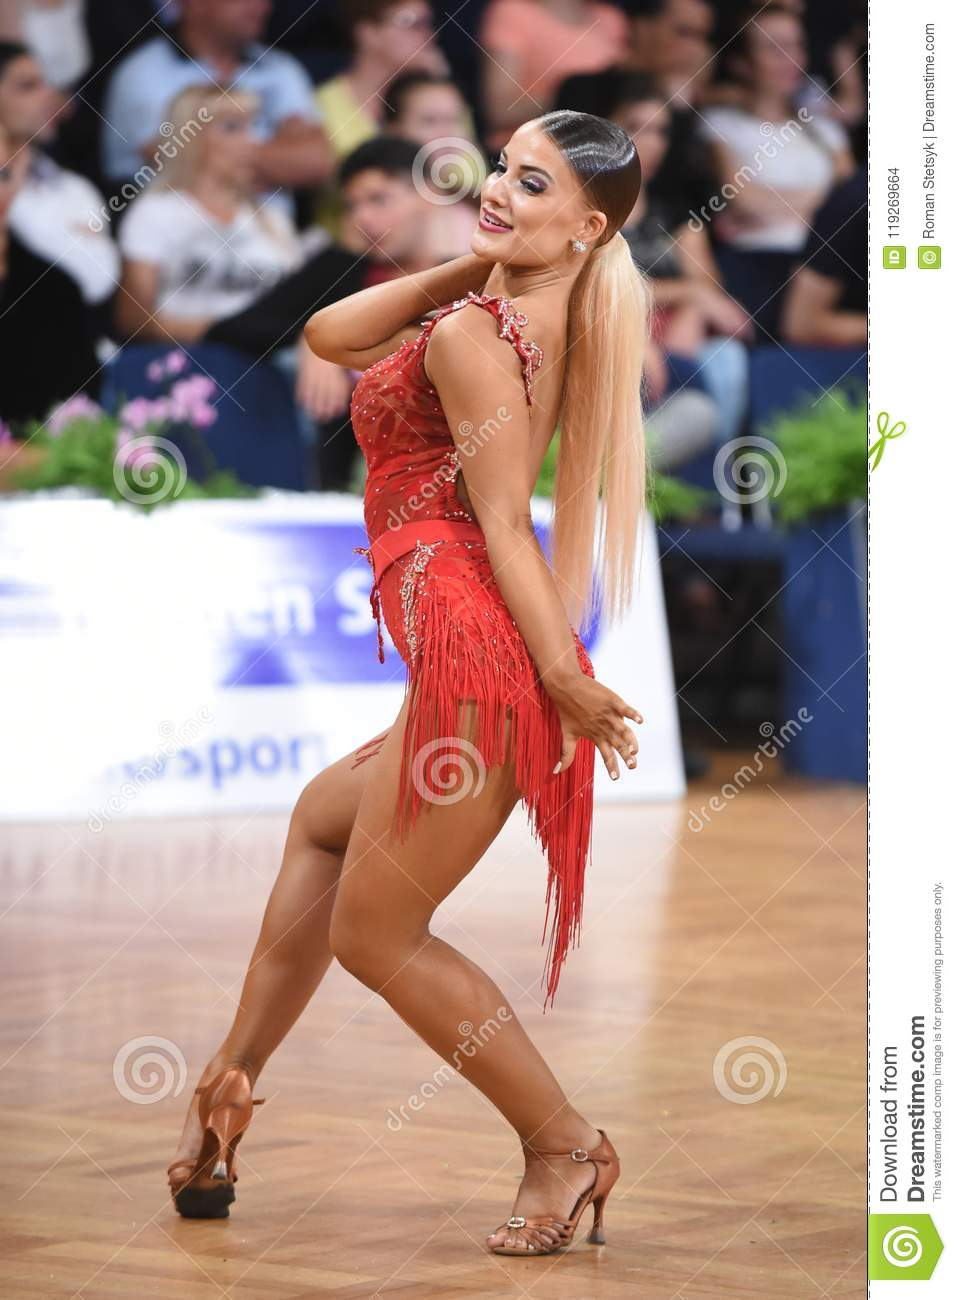 Stuttgart, Germany - August 14, 2015: An unidentified latin female dancer  in a dance pose during Grand Slam Latin at German Open Championship, on  August 14, ...